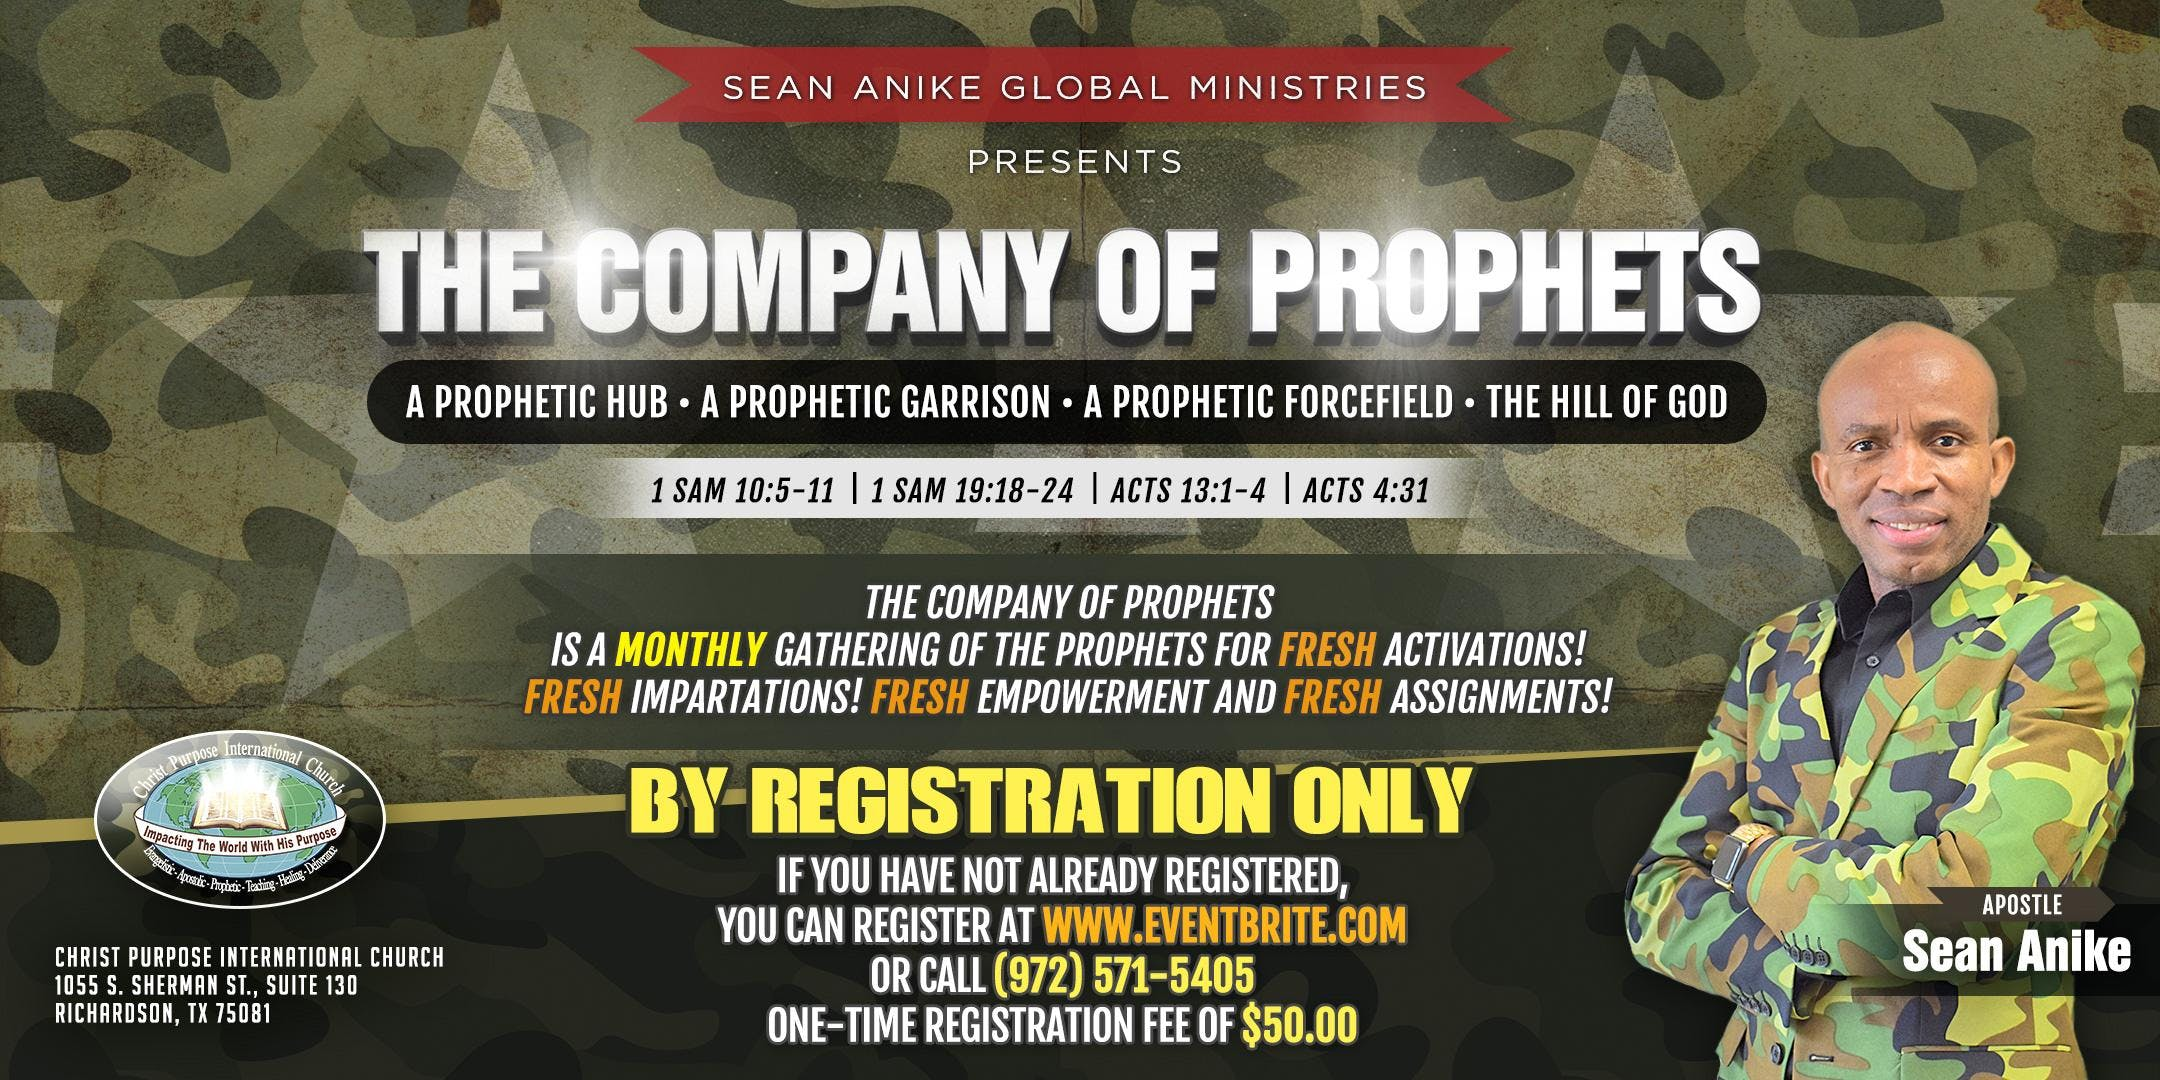 THE COMPANY OF PROPHETS